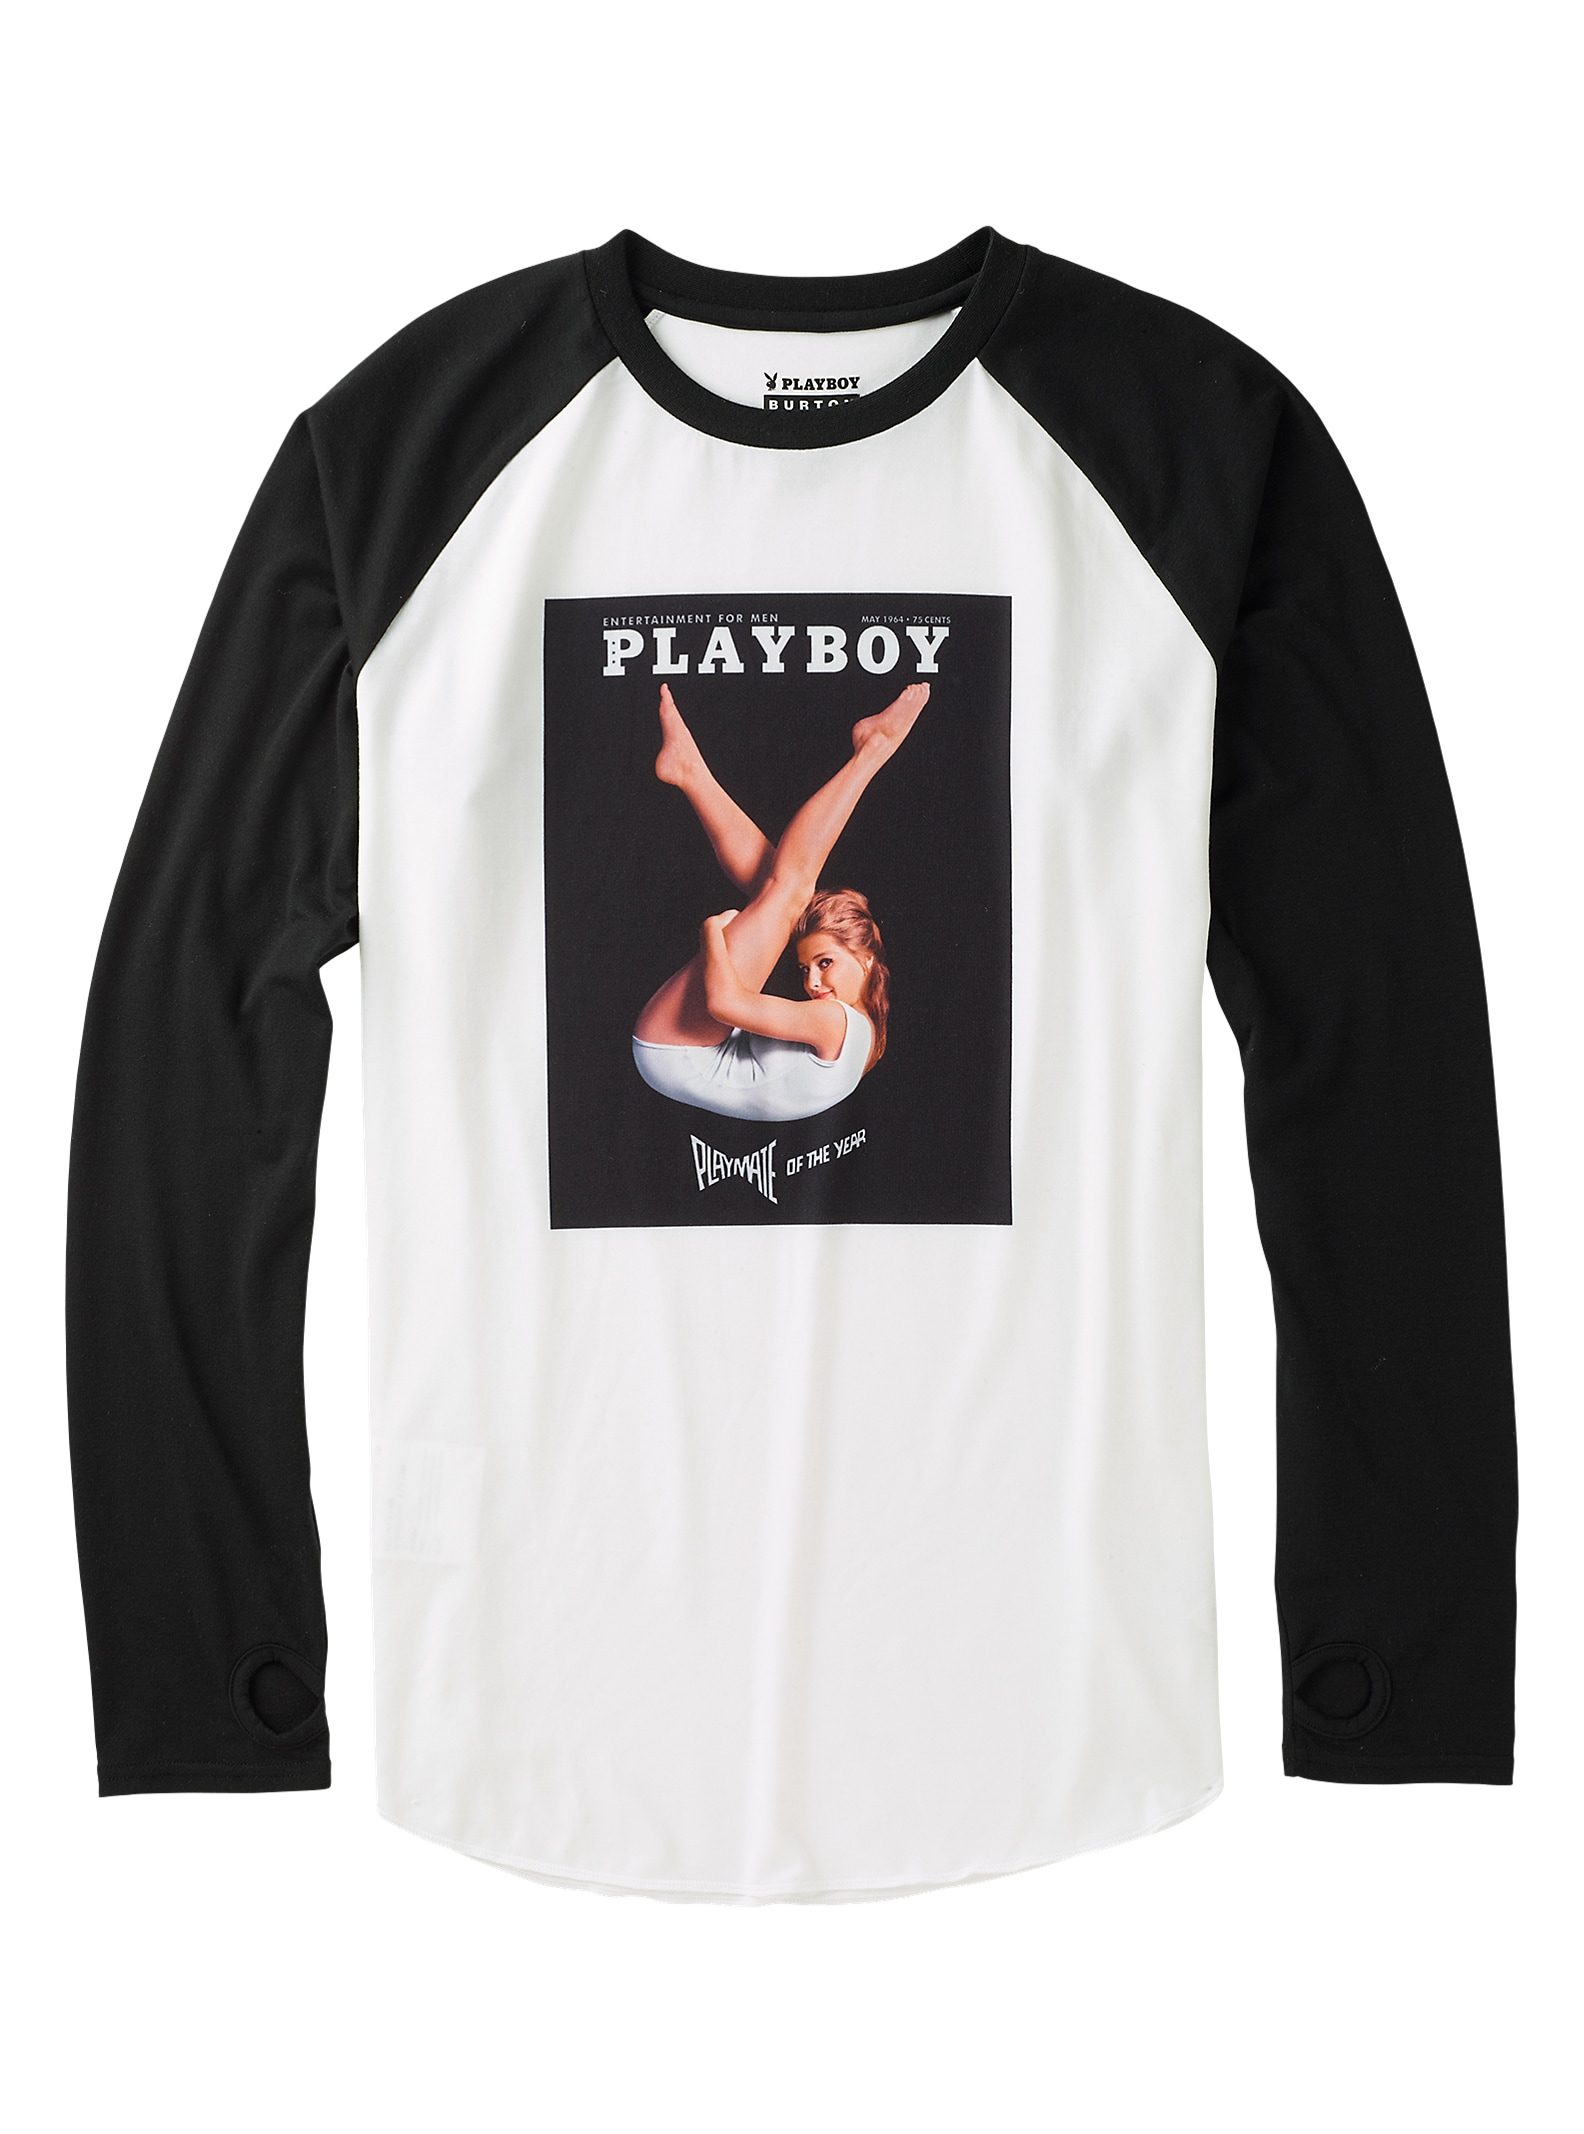 Burton x Playboy - T-shirt tech Roadie affichage en Playboy 1964